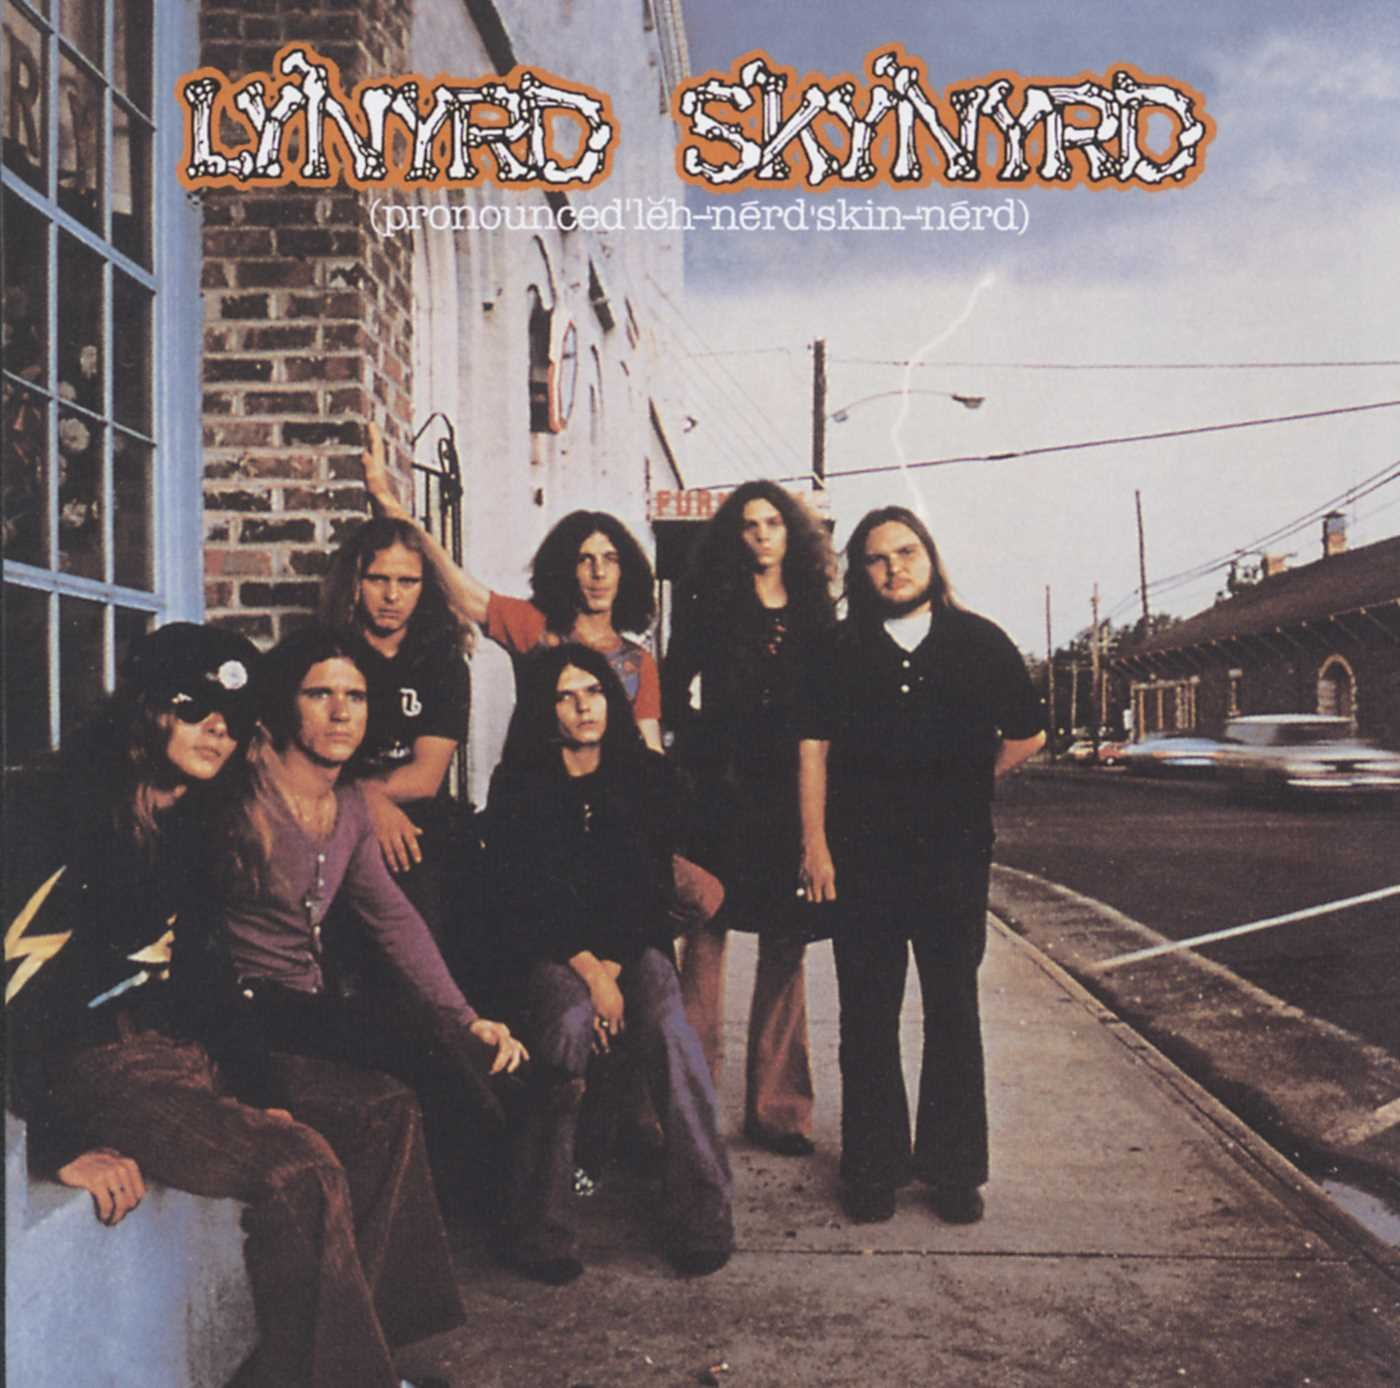 CD : Lynyrd Skynyrd - Pronounced Leh-Nerd Skin-Nerd (Bonus Tracks, Remastered)